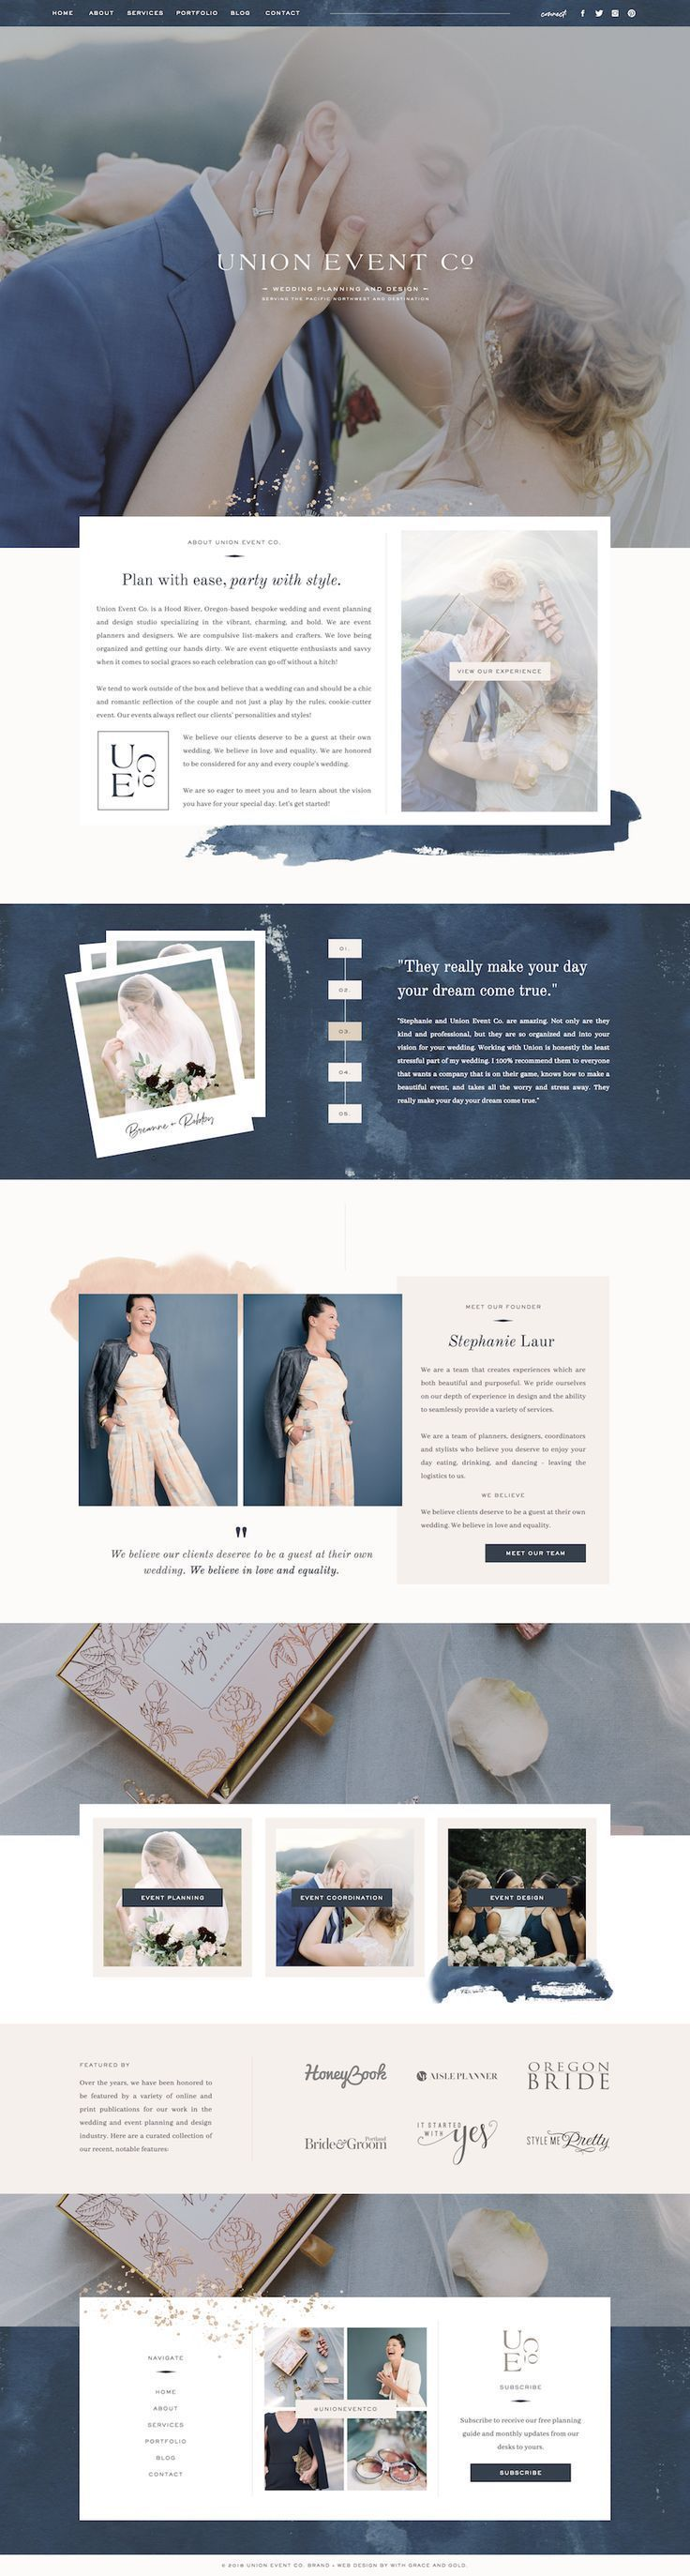 Custom Showit Web Design for Union Event Co. by With Grace ...